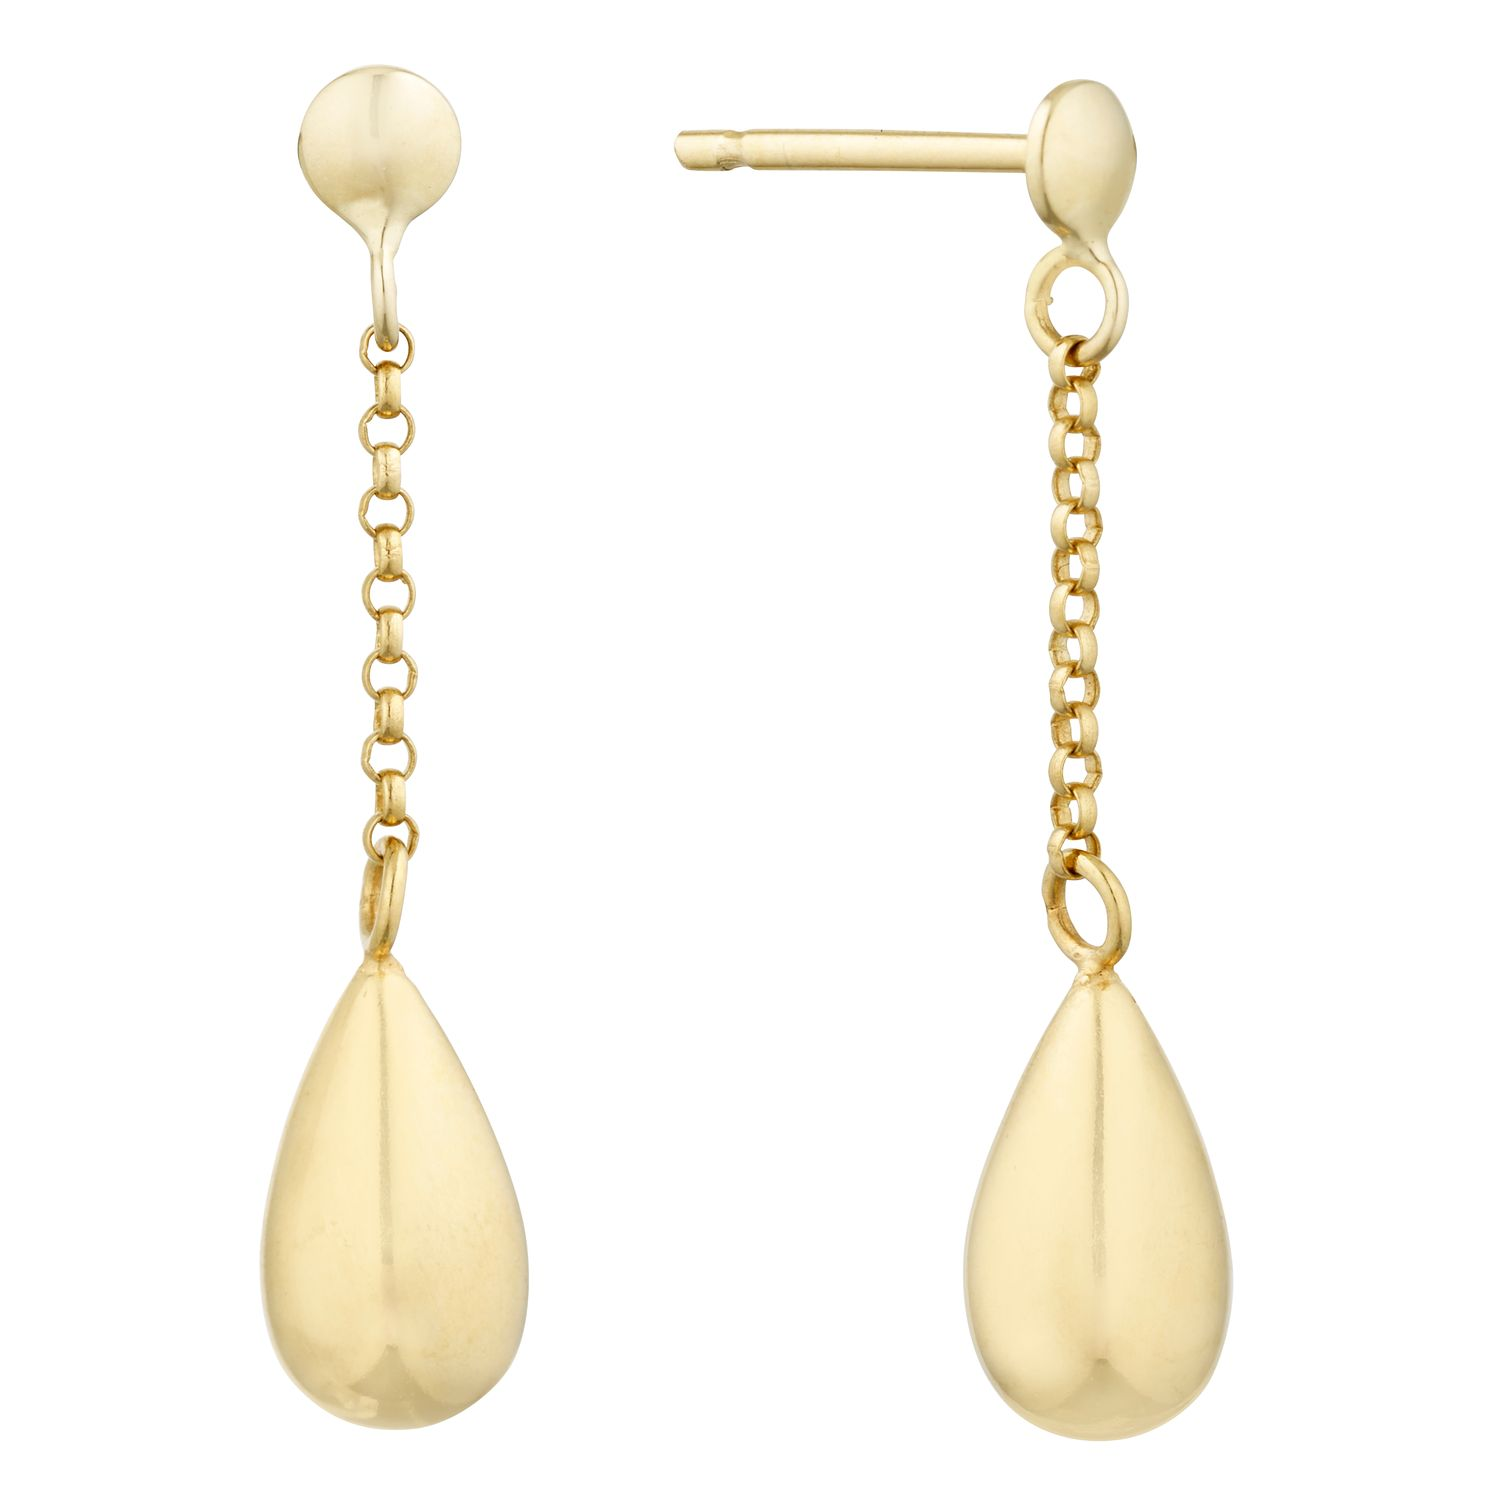 9ct Yellow Gold Teardrop Chain Drop Earrings - Product number 9737022